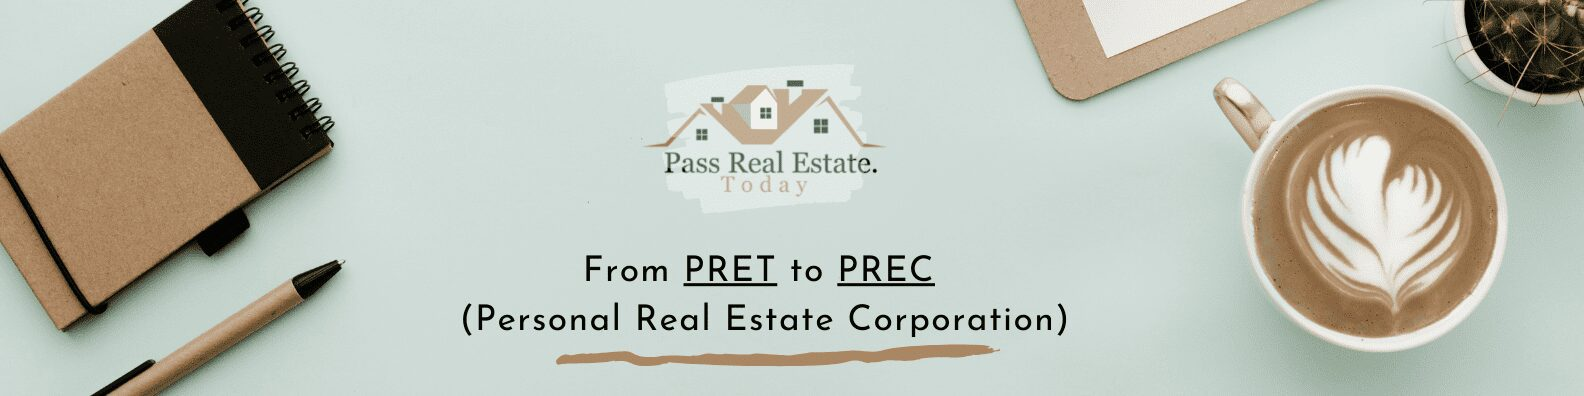 from PRET to PREC banner